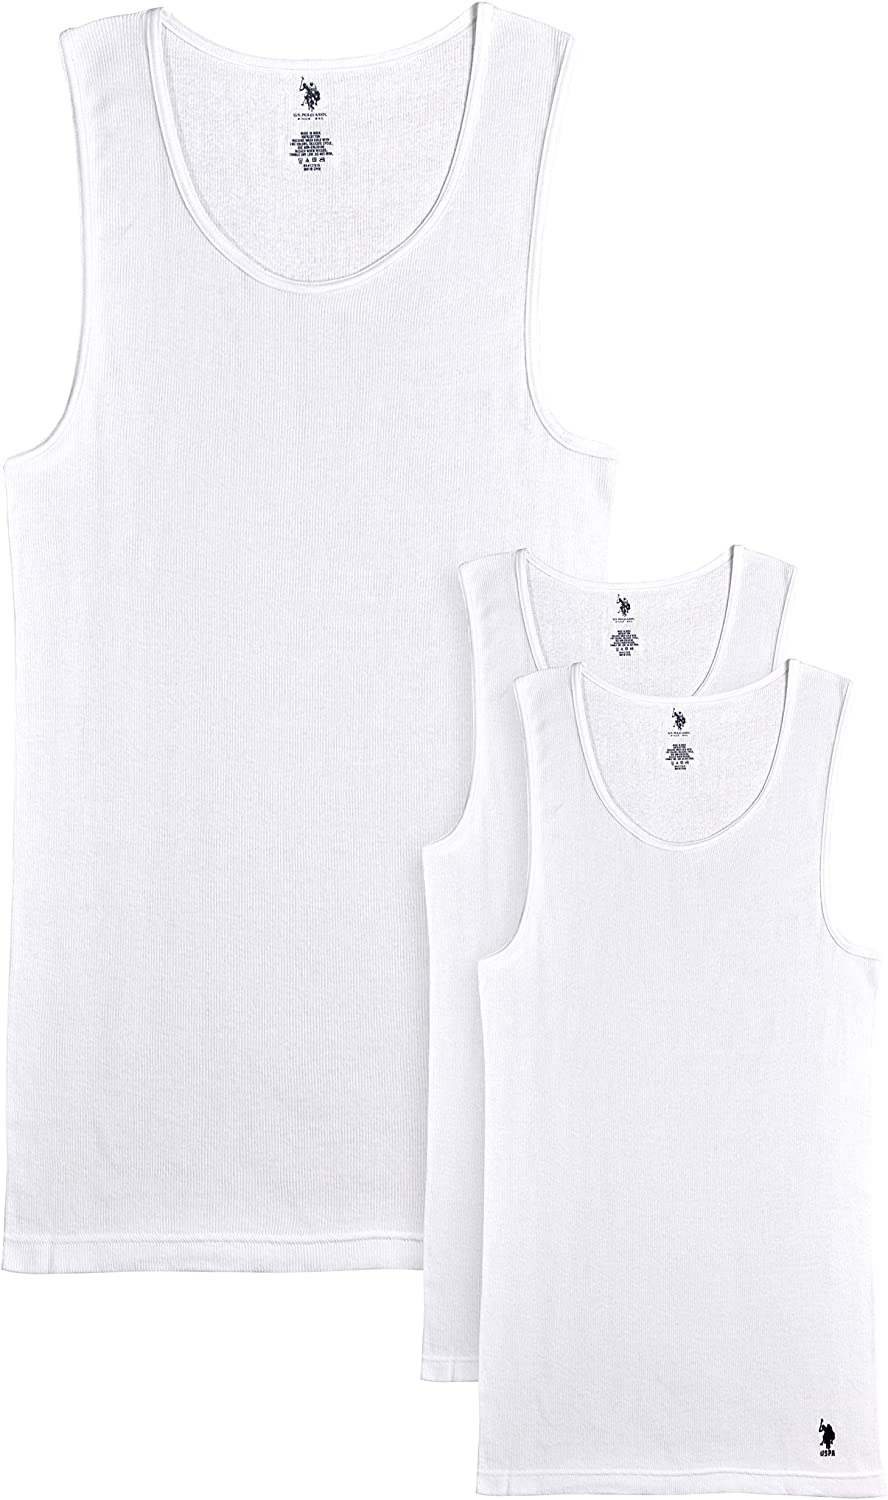 U.S. Polo Assn. Men's Undershirt - Ta A-Line Max 72% Discount mail order OFF Ribbed Big and Tall